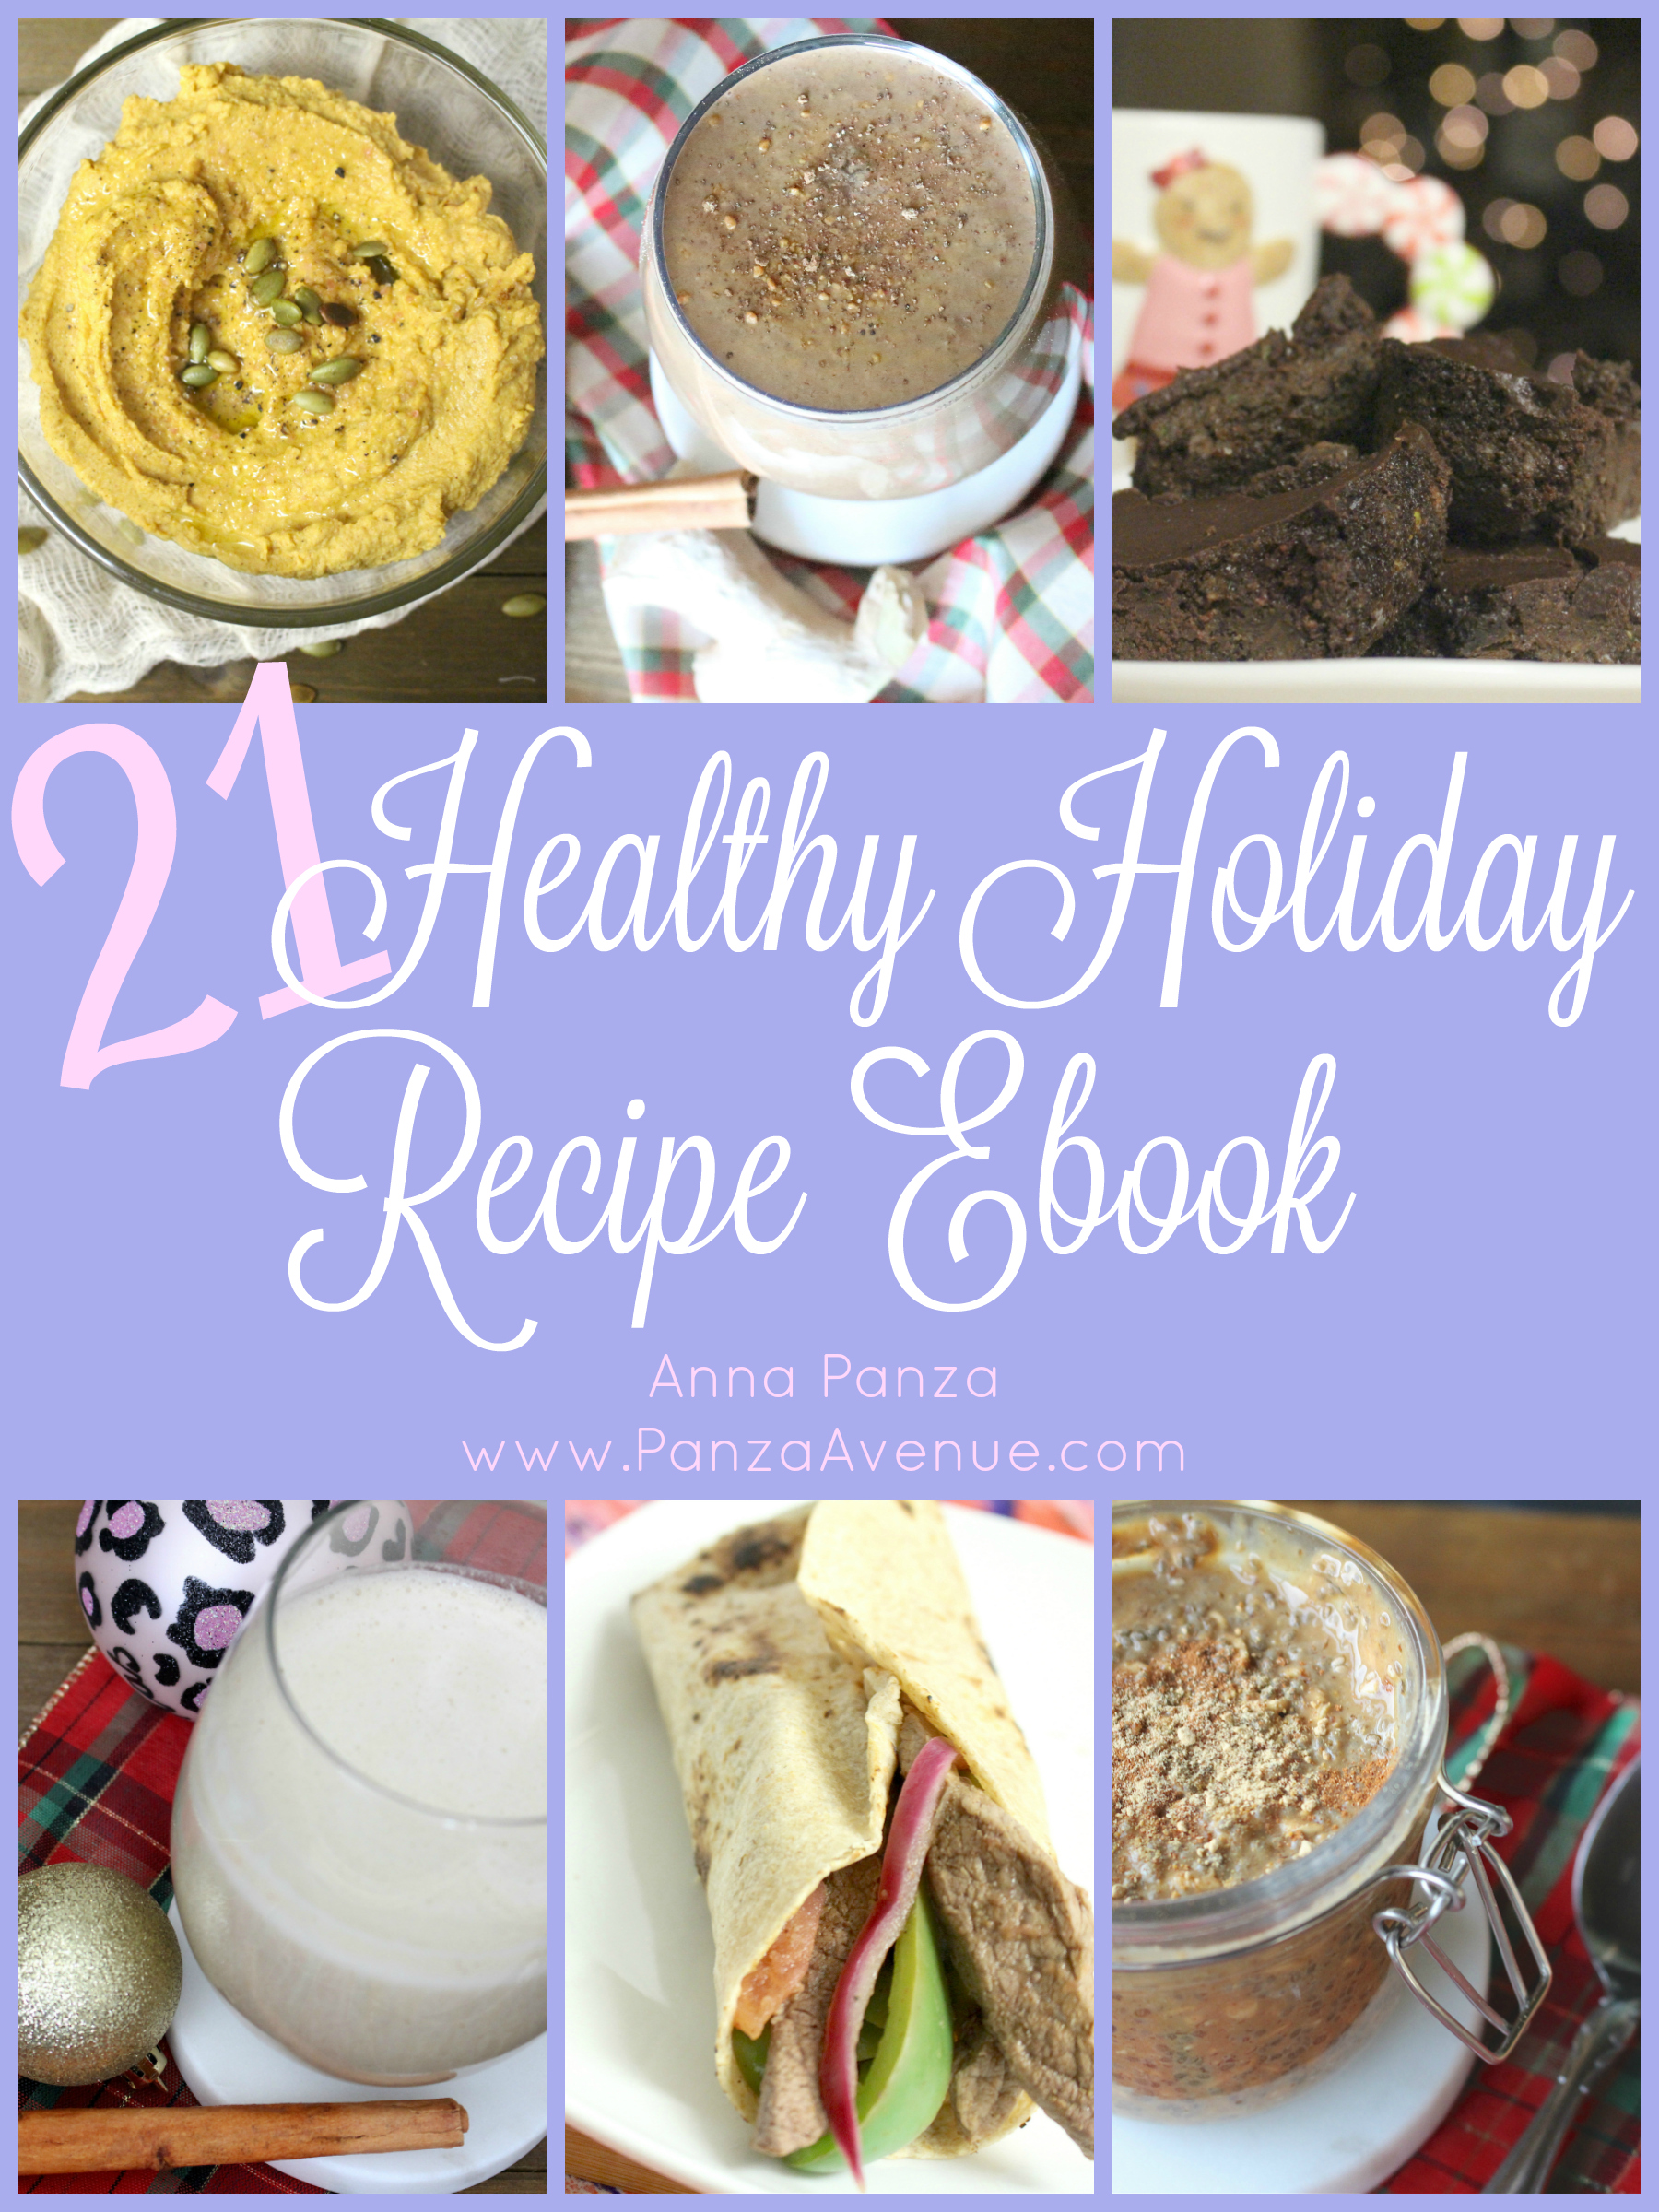 Free 21 Healthy Holiday Ebook download